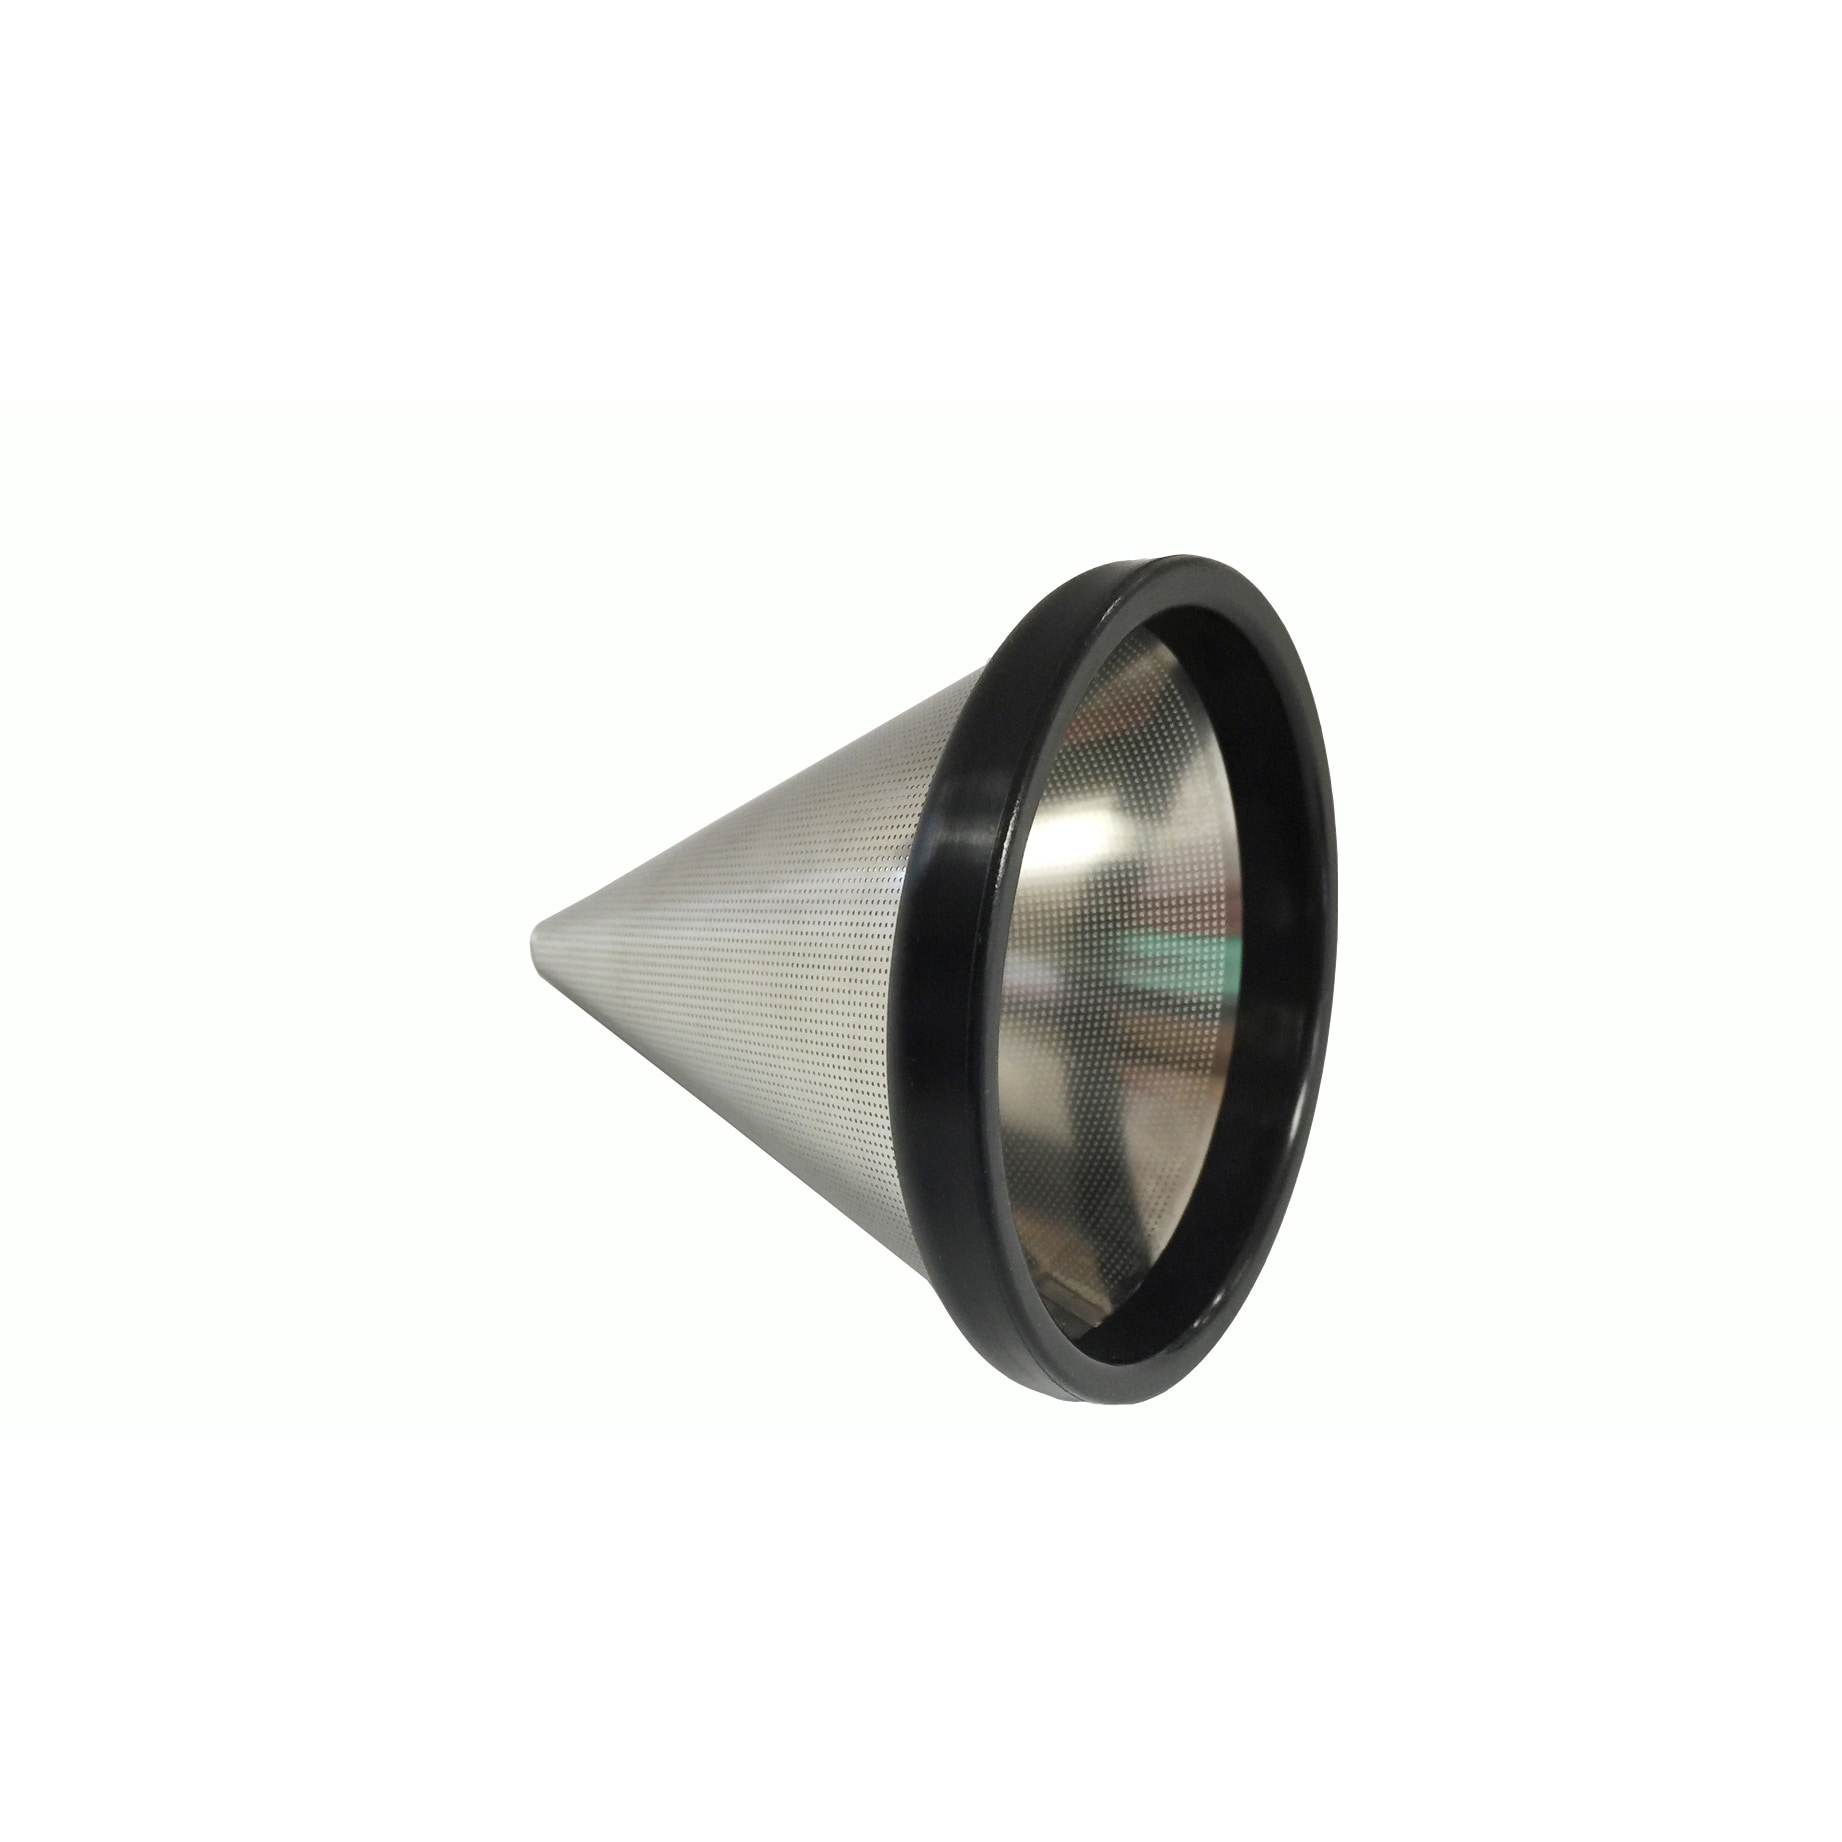 Crucial Reusable Stainless Steel (Silver) Cone Coffee Fil...